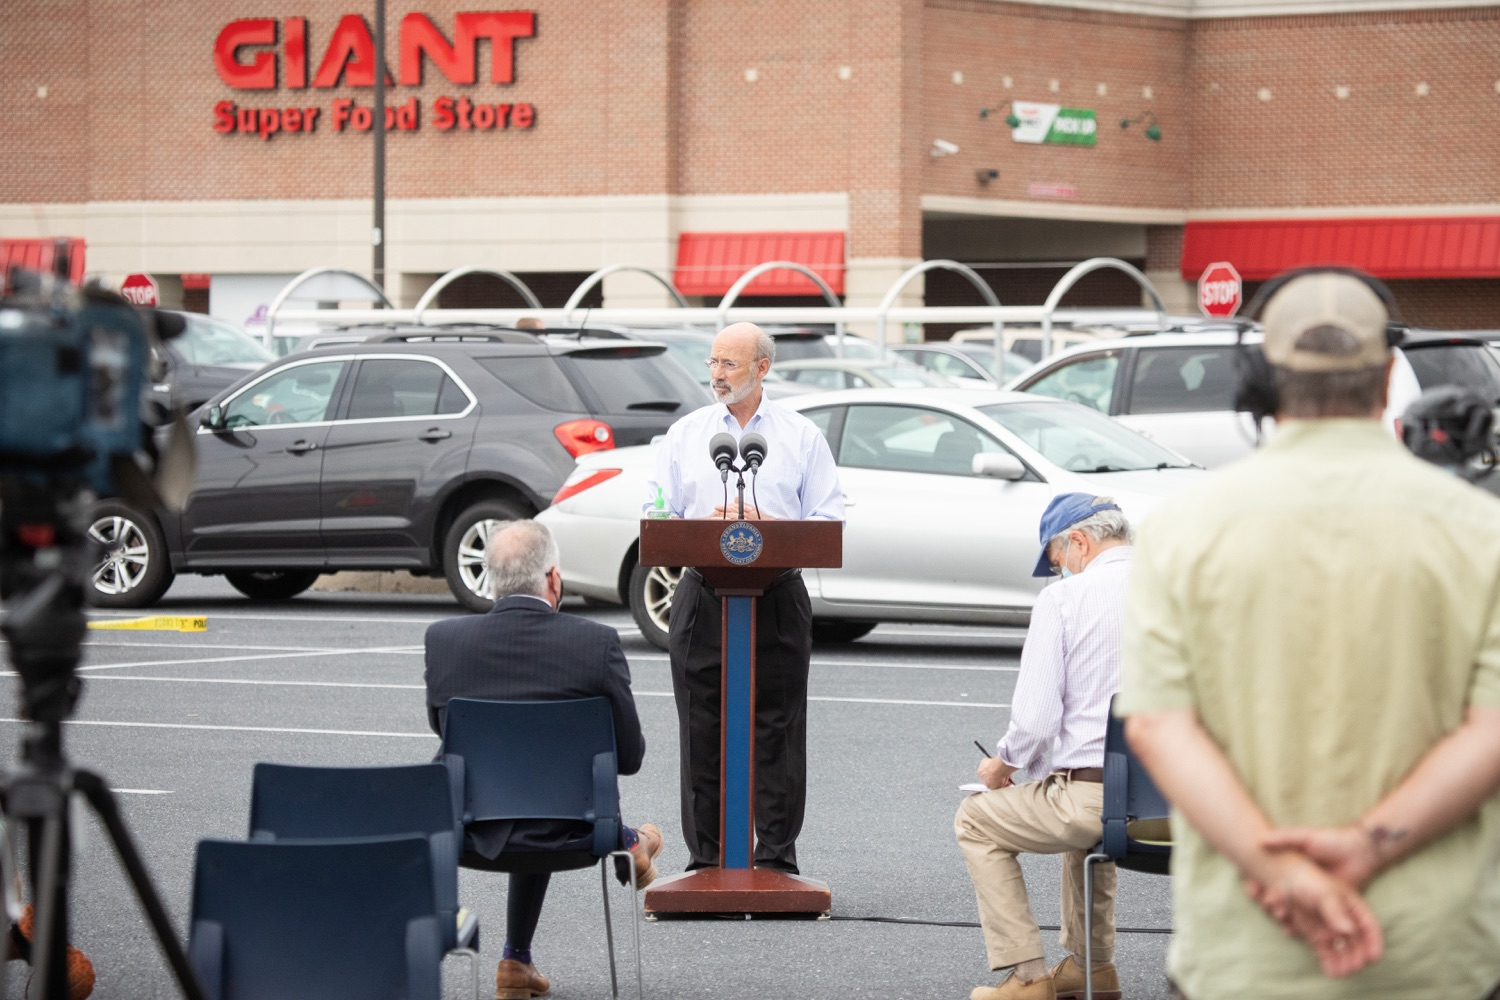 """<a href=""""https://filesource.wostreaming.net/commonwealthofpa/photo/18166_gov_cares_act_dz_11.jpg"""" target=""""_blank"""">⇣Download Photo<br></a>Pennsylvania Governor Tom Wolf speaking to reporters at the announcement. Today, Governor Tom Wolf announced the availability of $50 million in grant funding to help employers provide hazard pay to employees in life-sustaining occupations during the COVID-19 pandemic. Hazard pay is intended to keep front-line employees working in vital industry sectors across Pennsylvania.  Harrisburg, PA  July 16, 2020"""